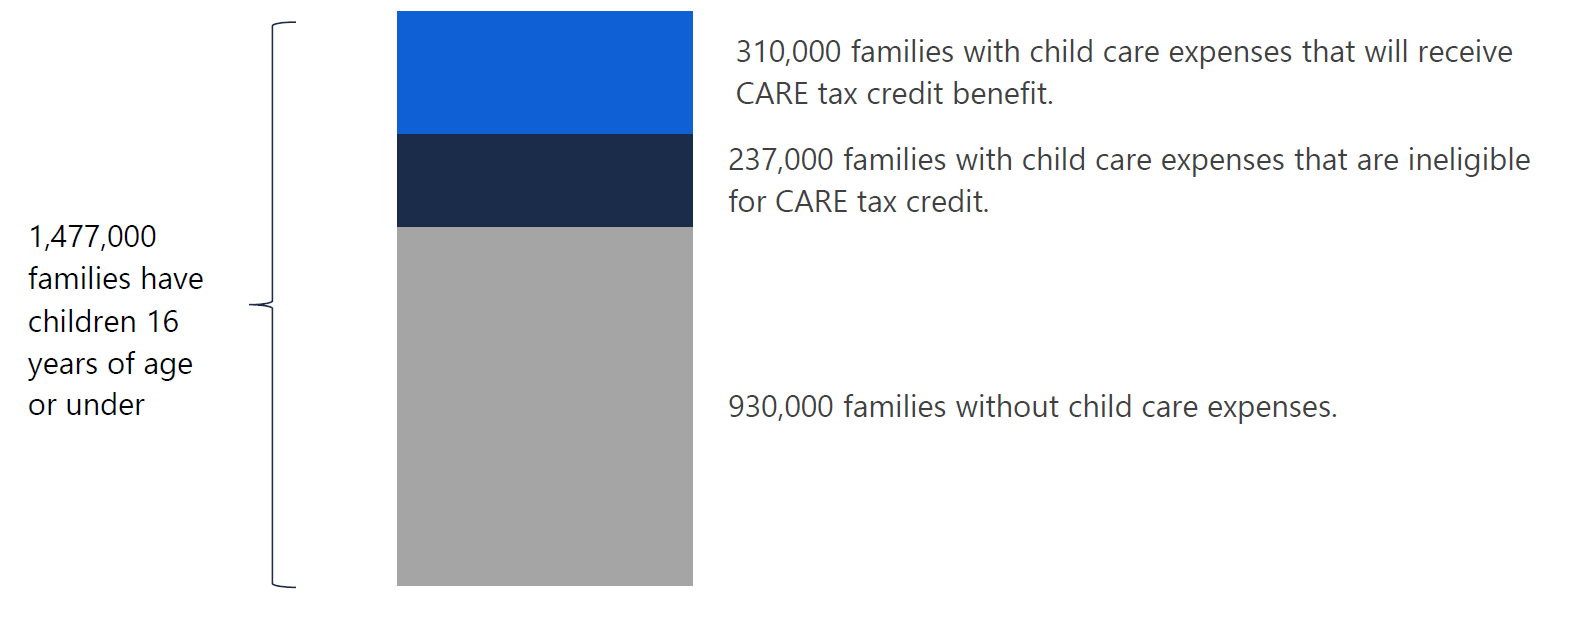 Figure 5.1 Out of all Ontario families with children, 21 per cent will receive the CARE tax credit